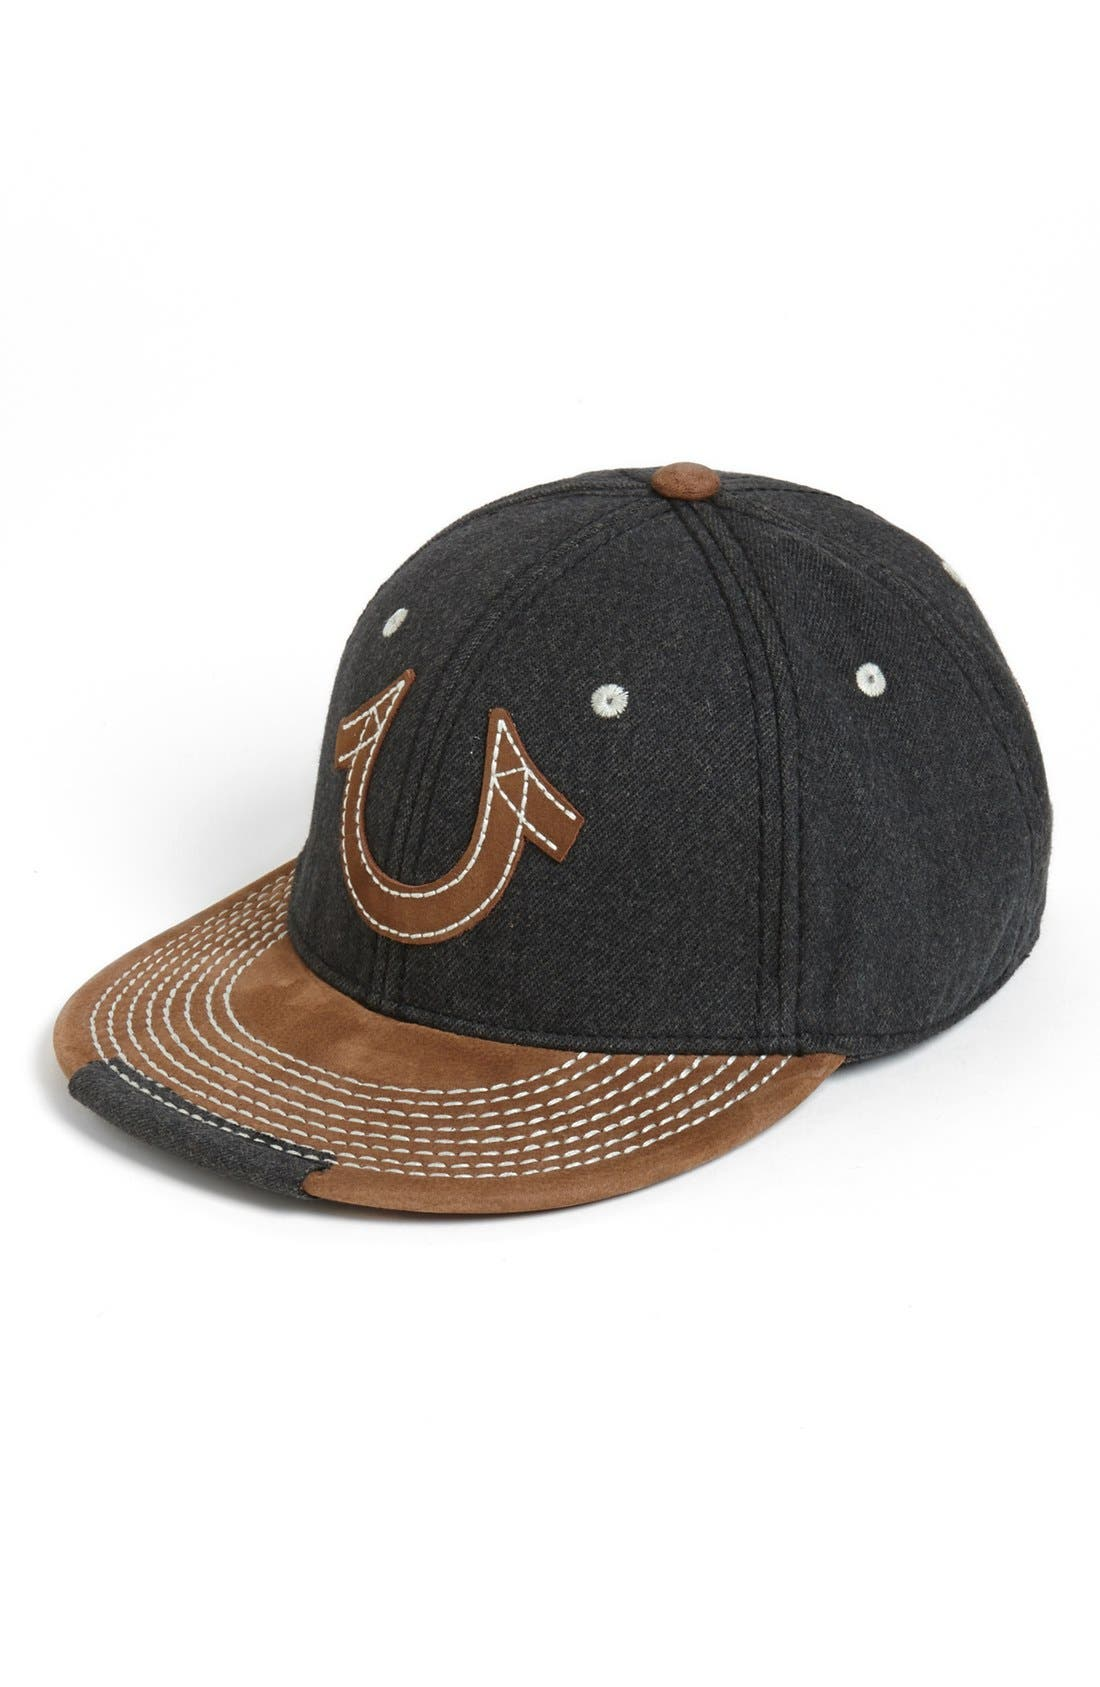 Alternate Image 1 Selected - True Religion Brand Jeans 'Horseshoe' Baseball Cap